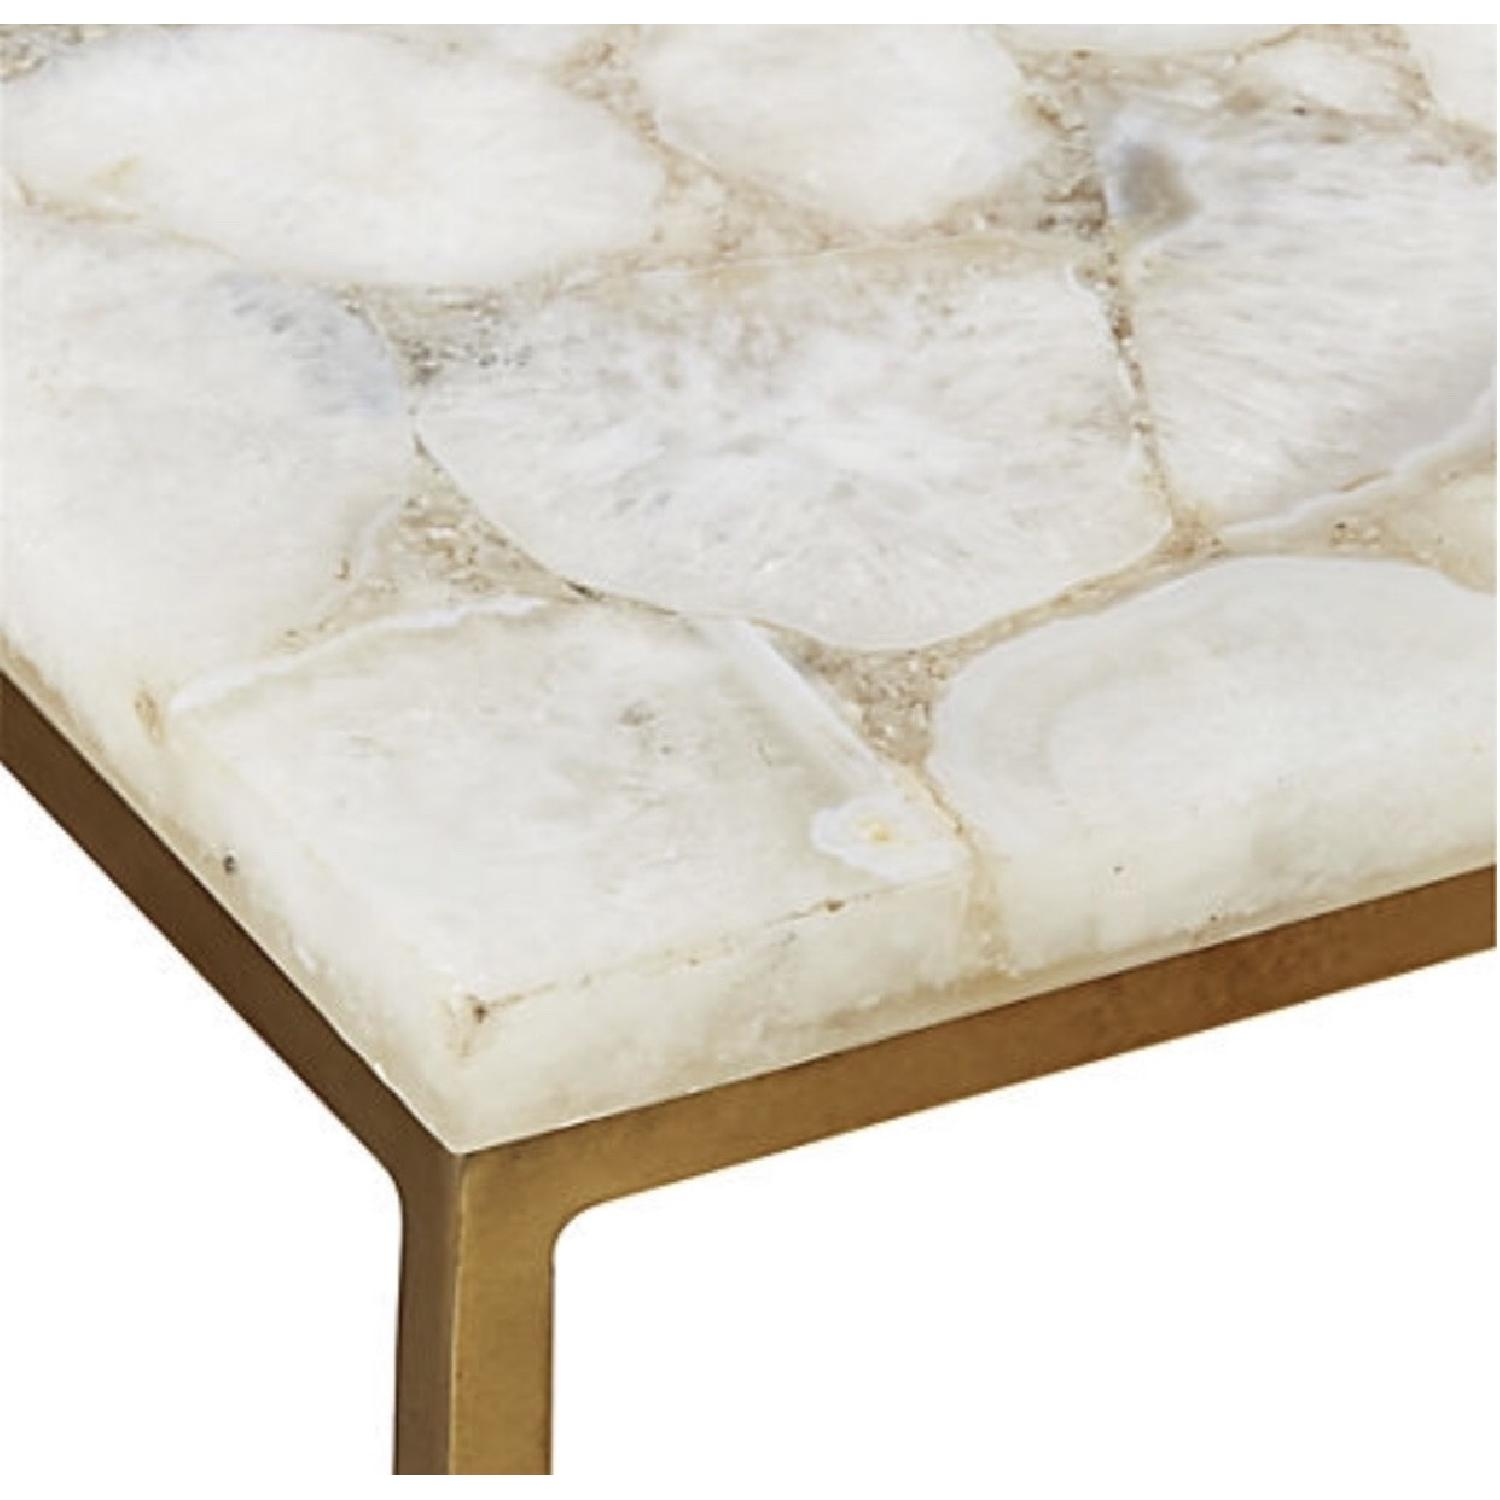 CB2 Iris White Agate Side Table-6